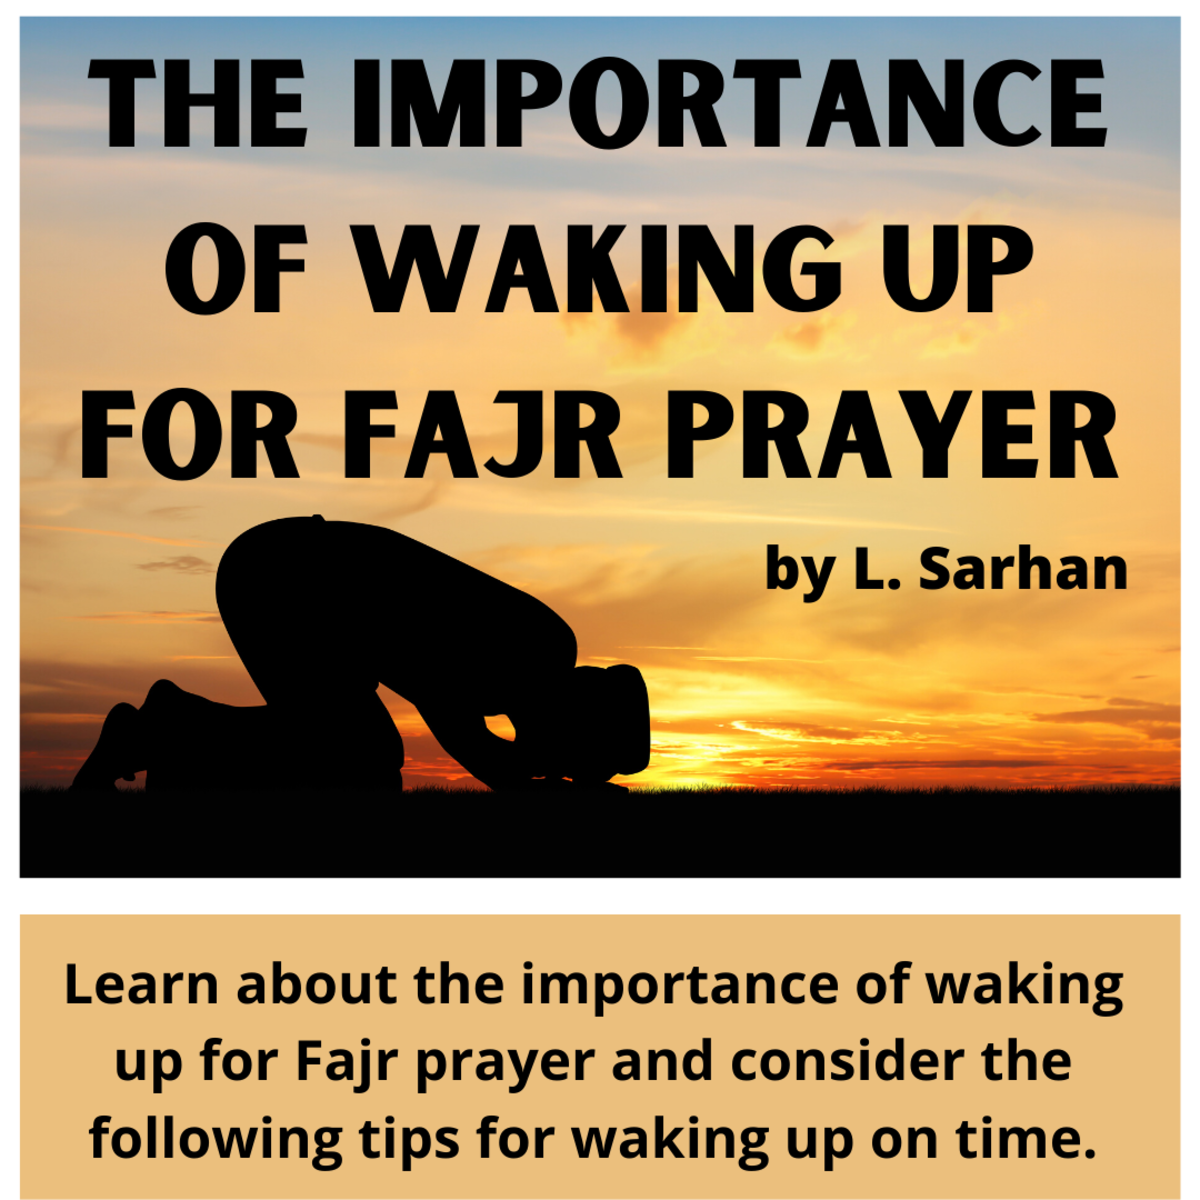 Learn about the importance of waking up for Fajr prayer and consider the following tips for waking up on time.